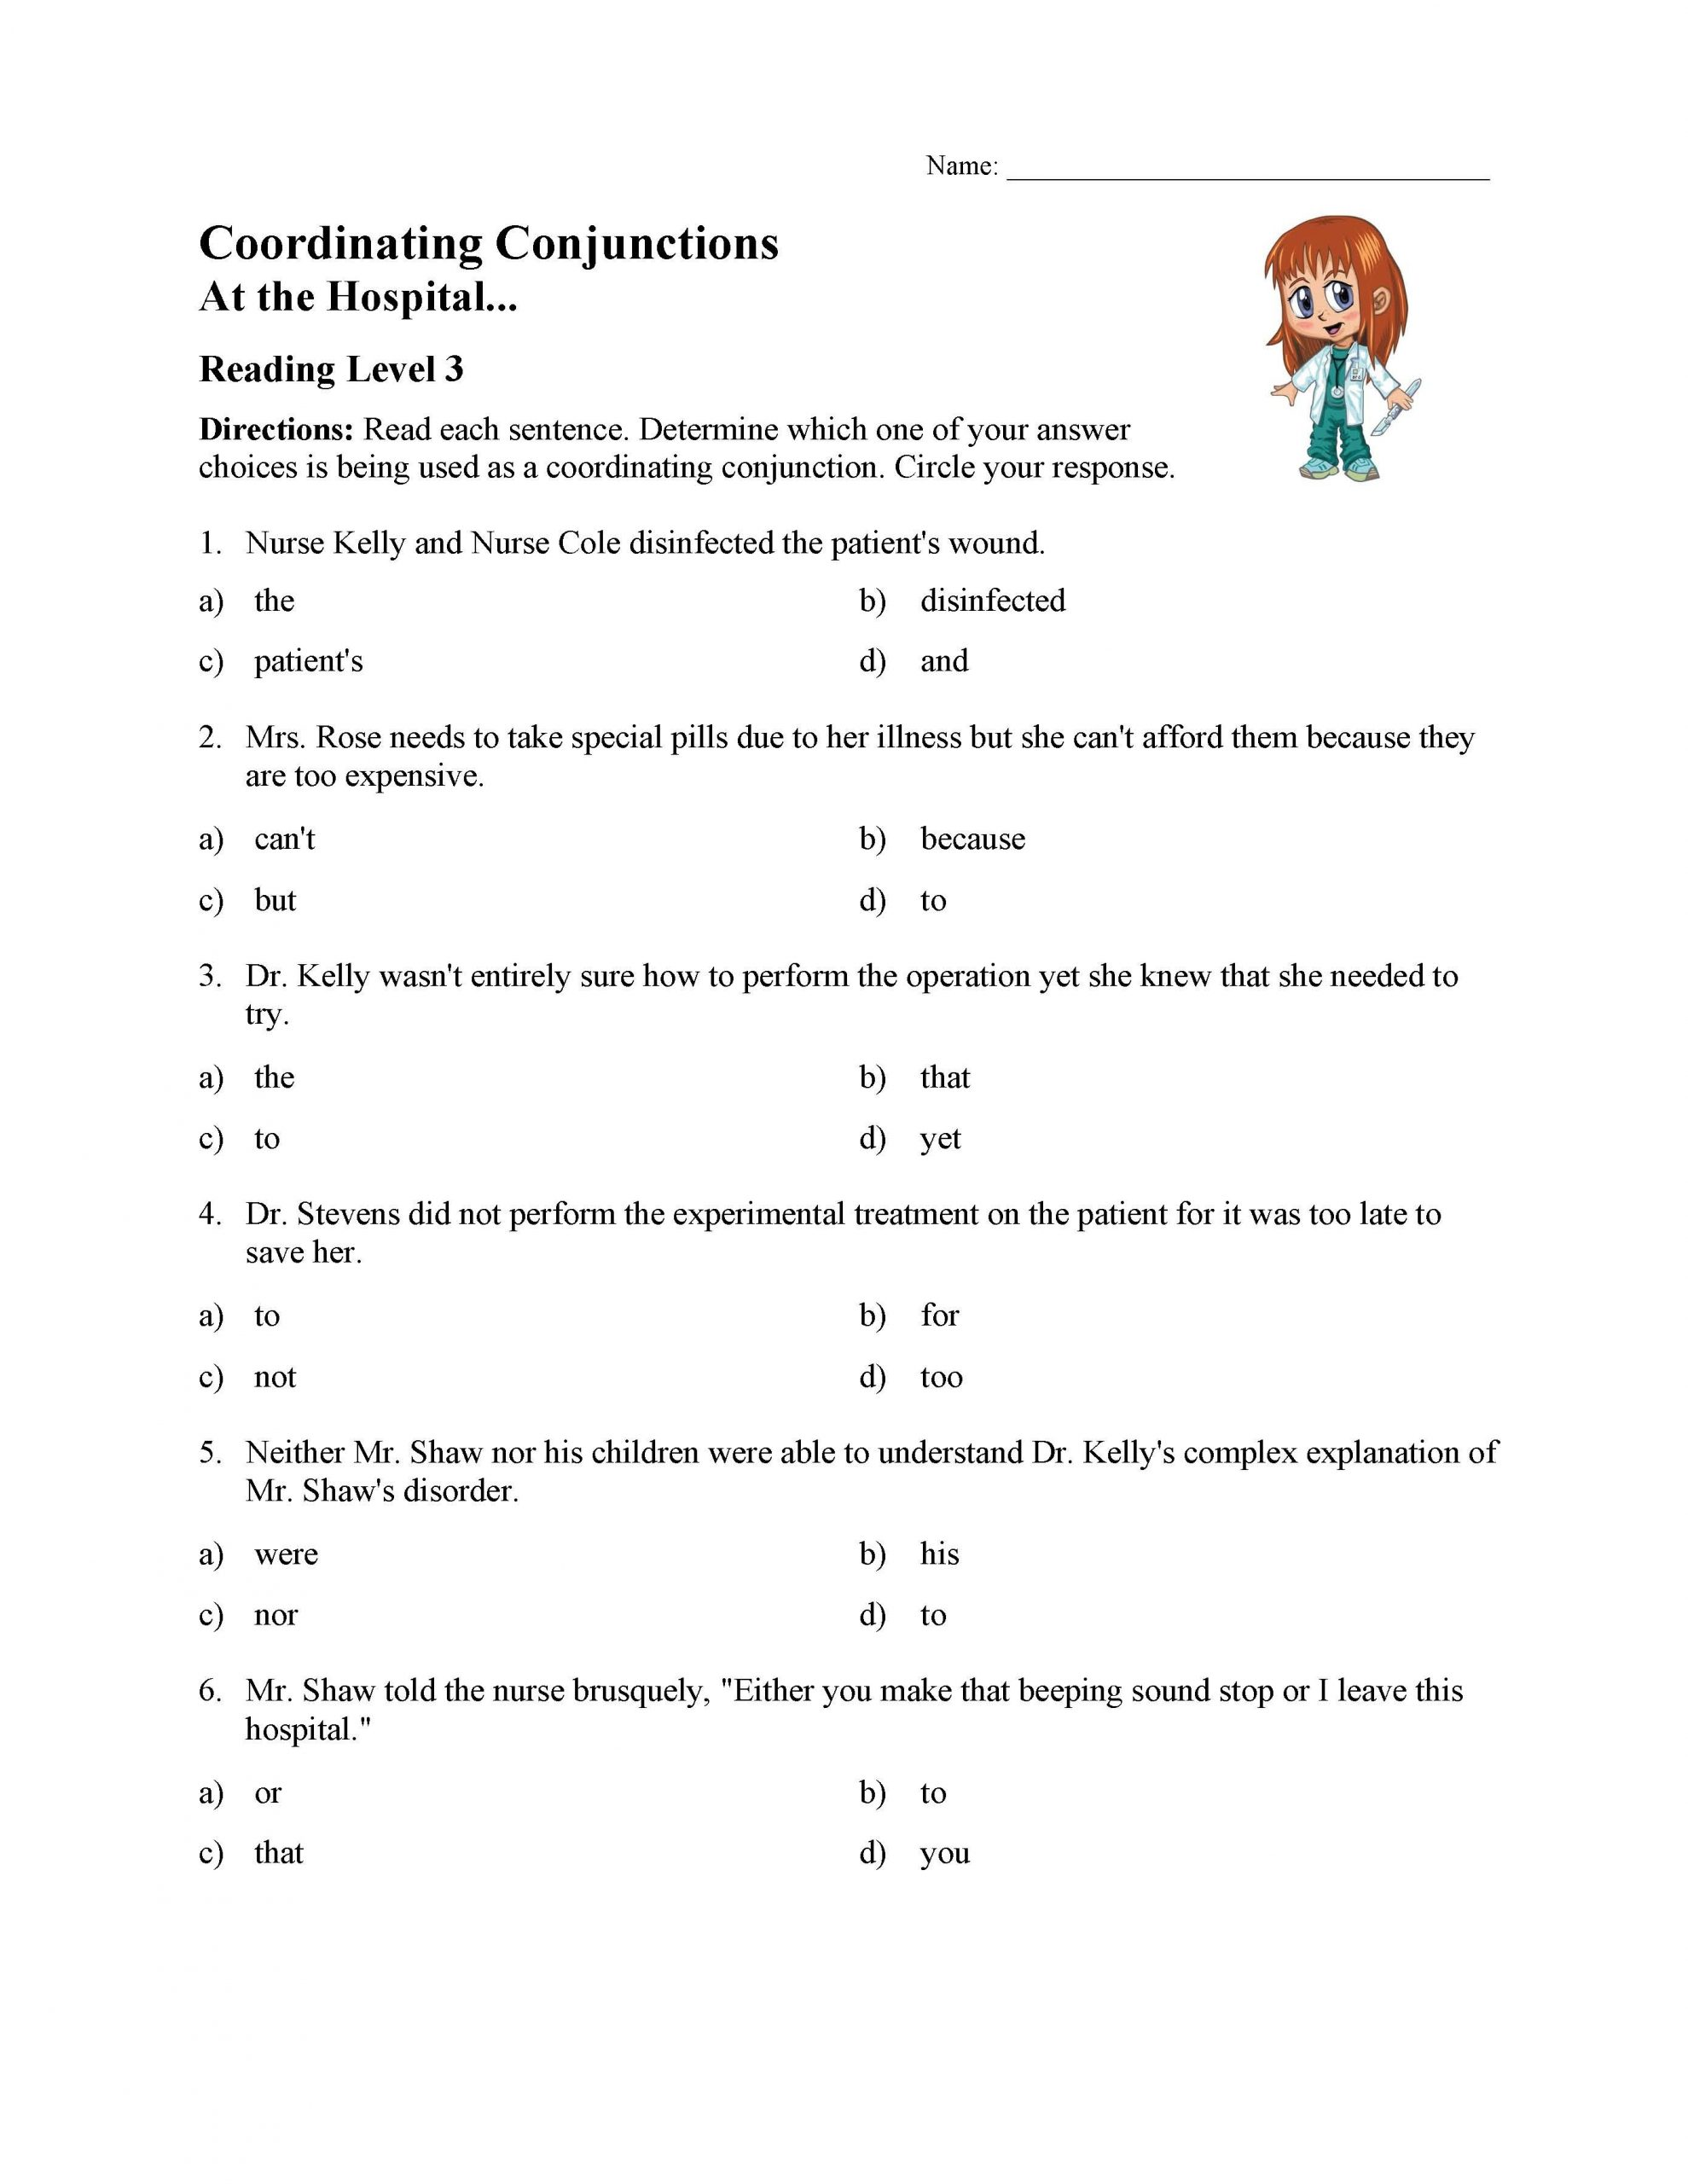 Conjunction Worksheets for Grade 3 Coordinating Conjunctions Worksheet Reading Level 3